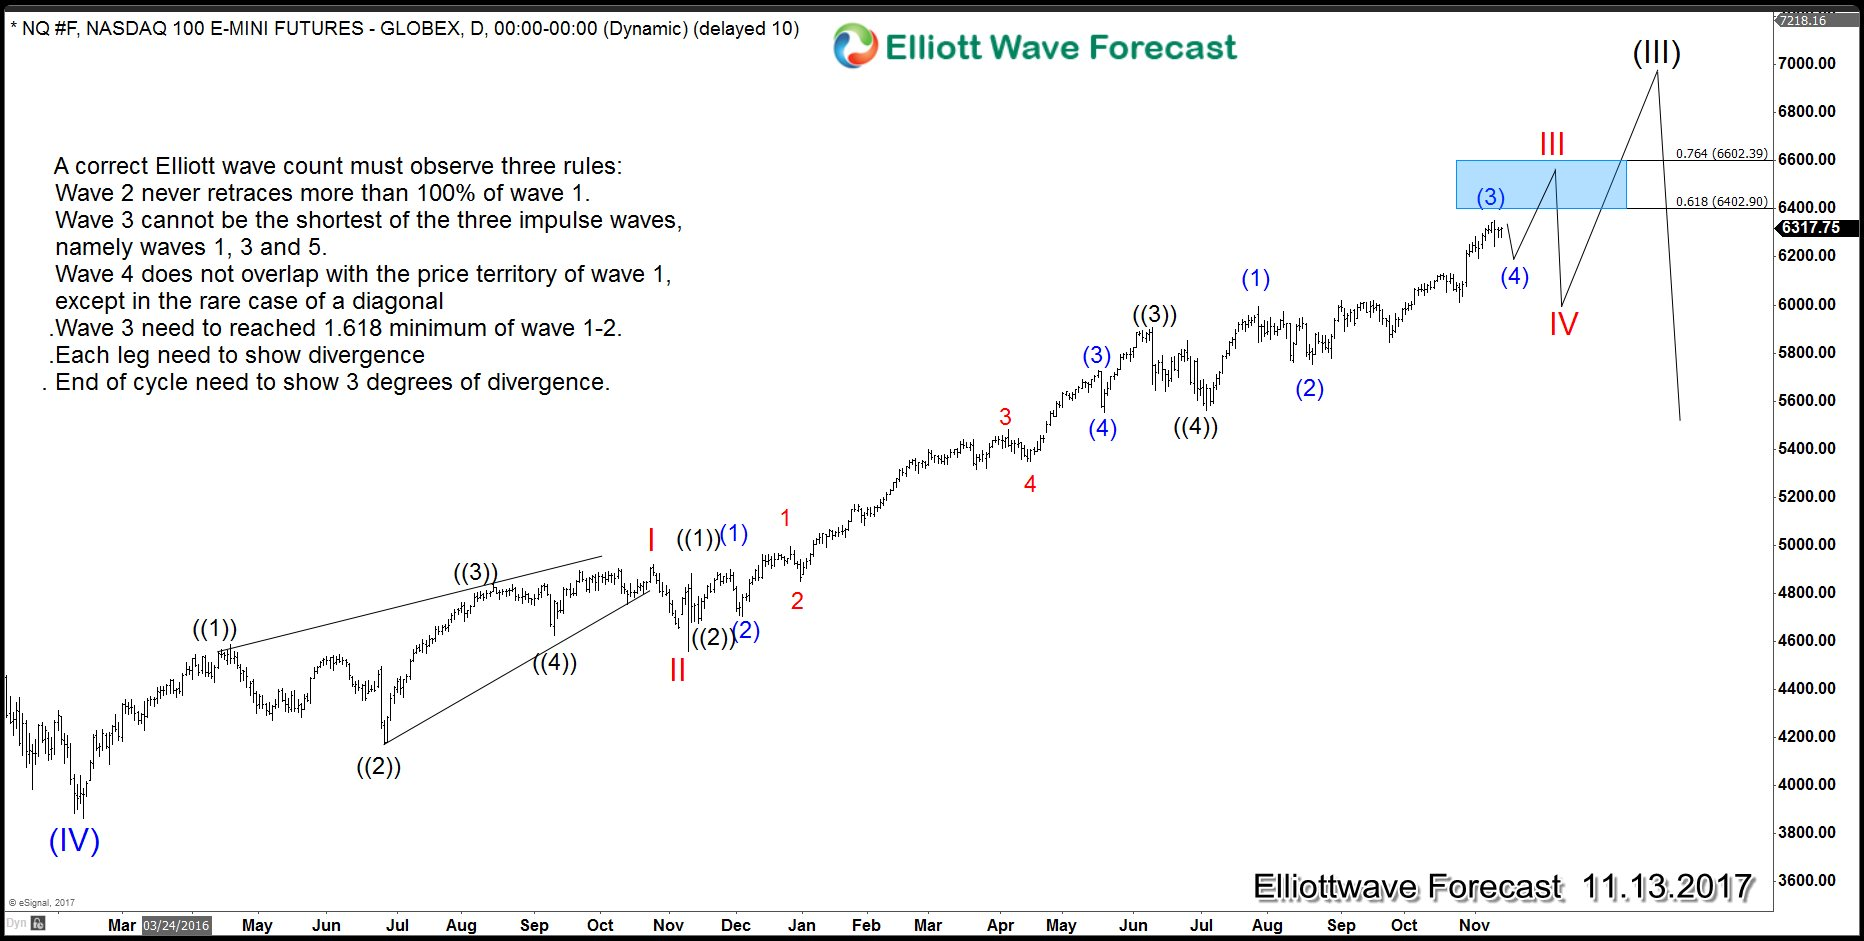 NASDAQ daily chart showing 5 waves advance